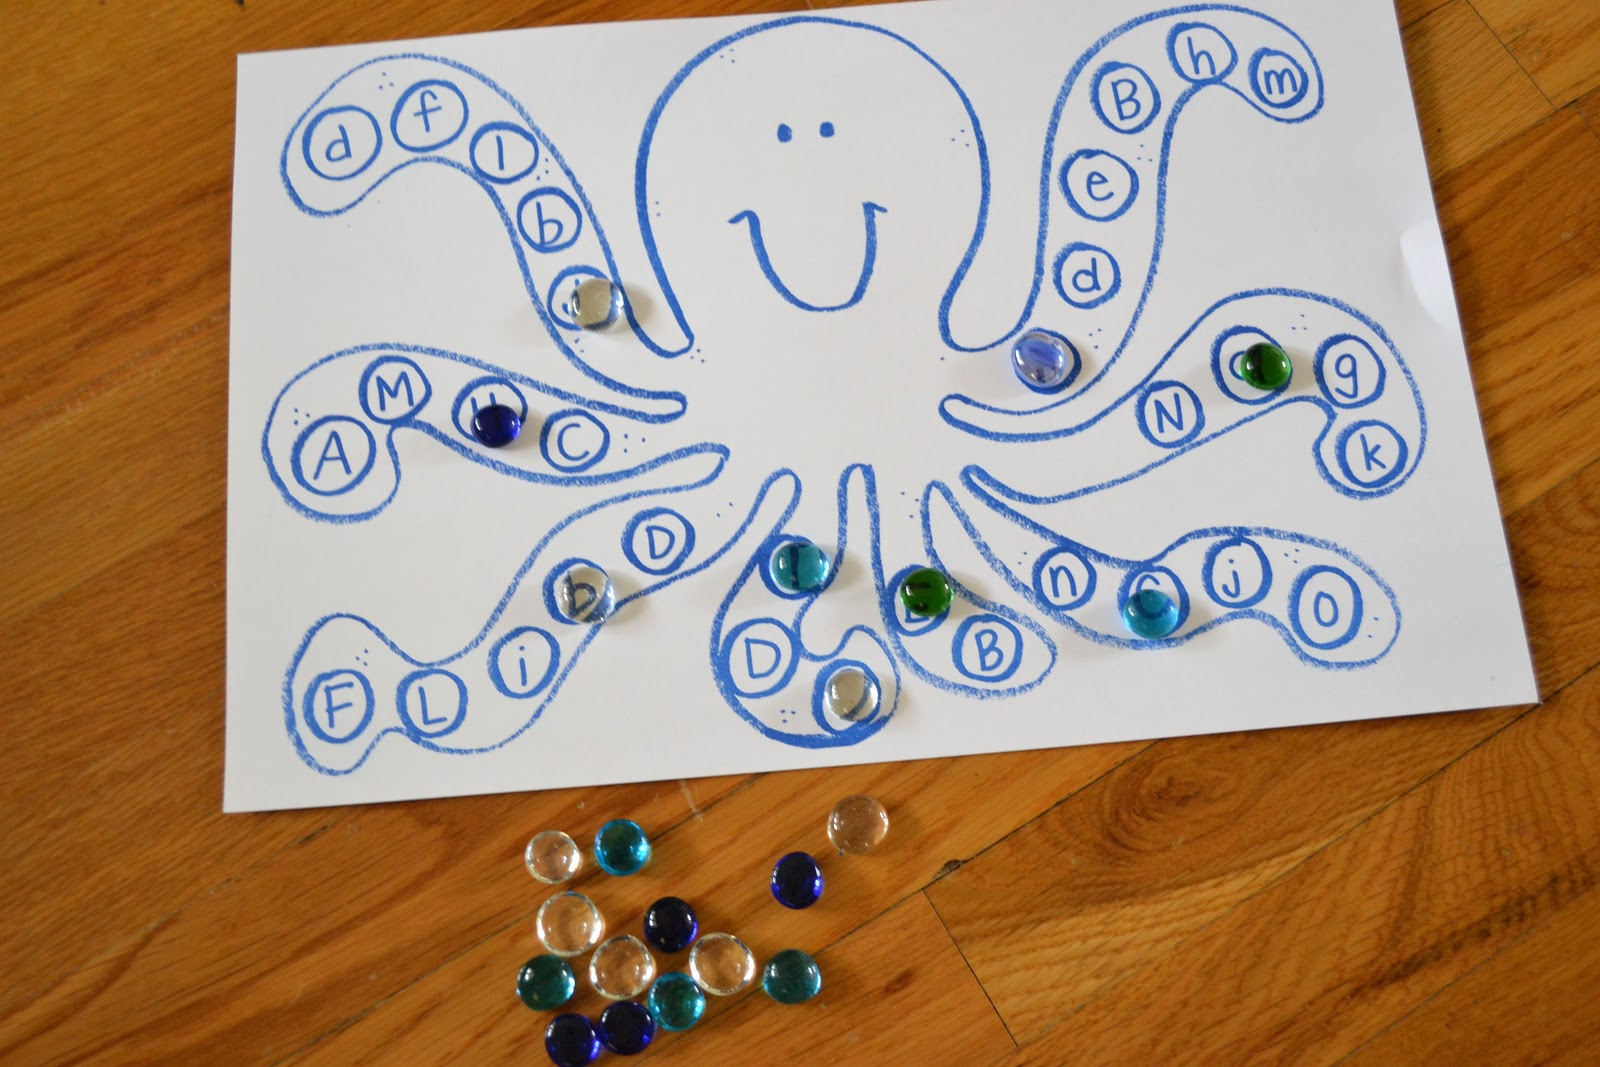 From The Hive Oo Octopus Day Preschool Style